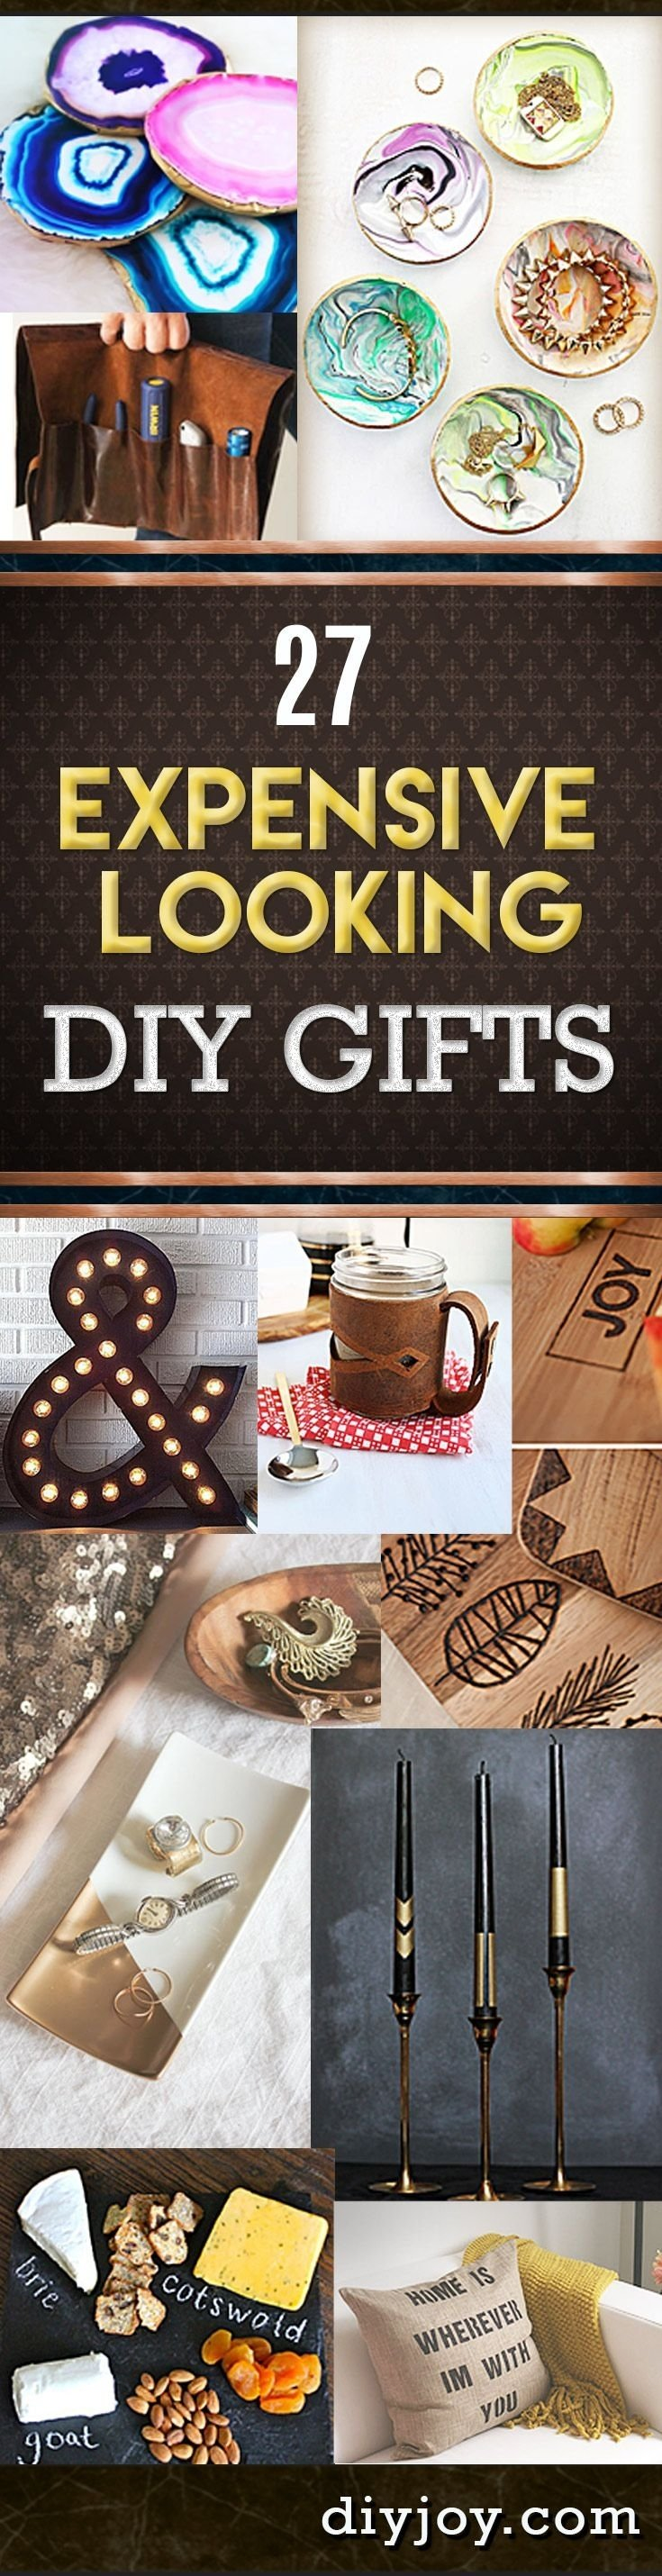 10 Trendy Cheap Christmas Gift Ideas For Family 233 best xmas ideas gift ideas holidays images on pinterest 1 2020